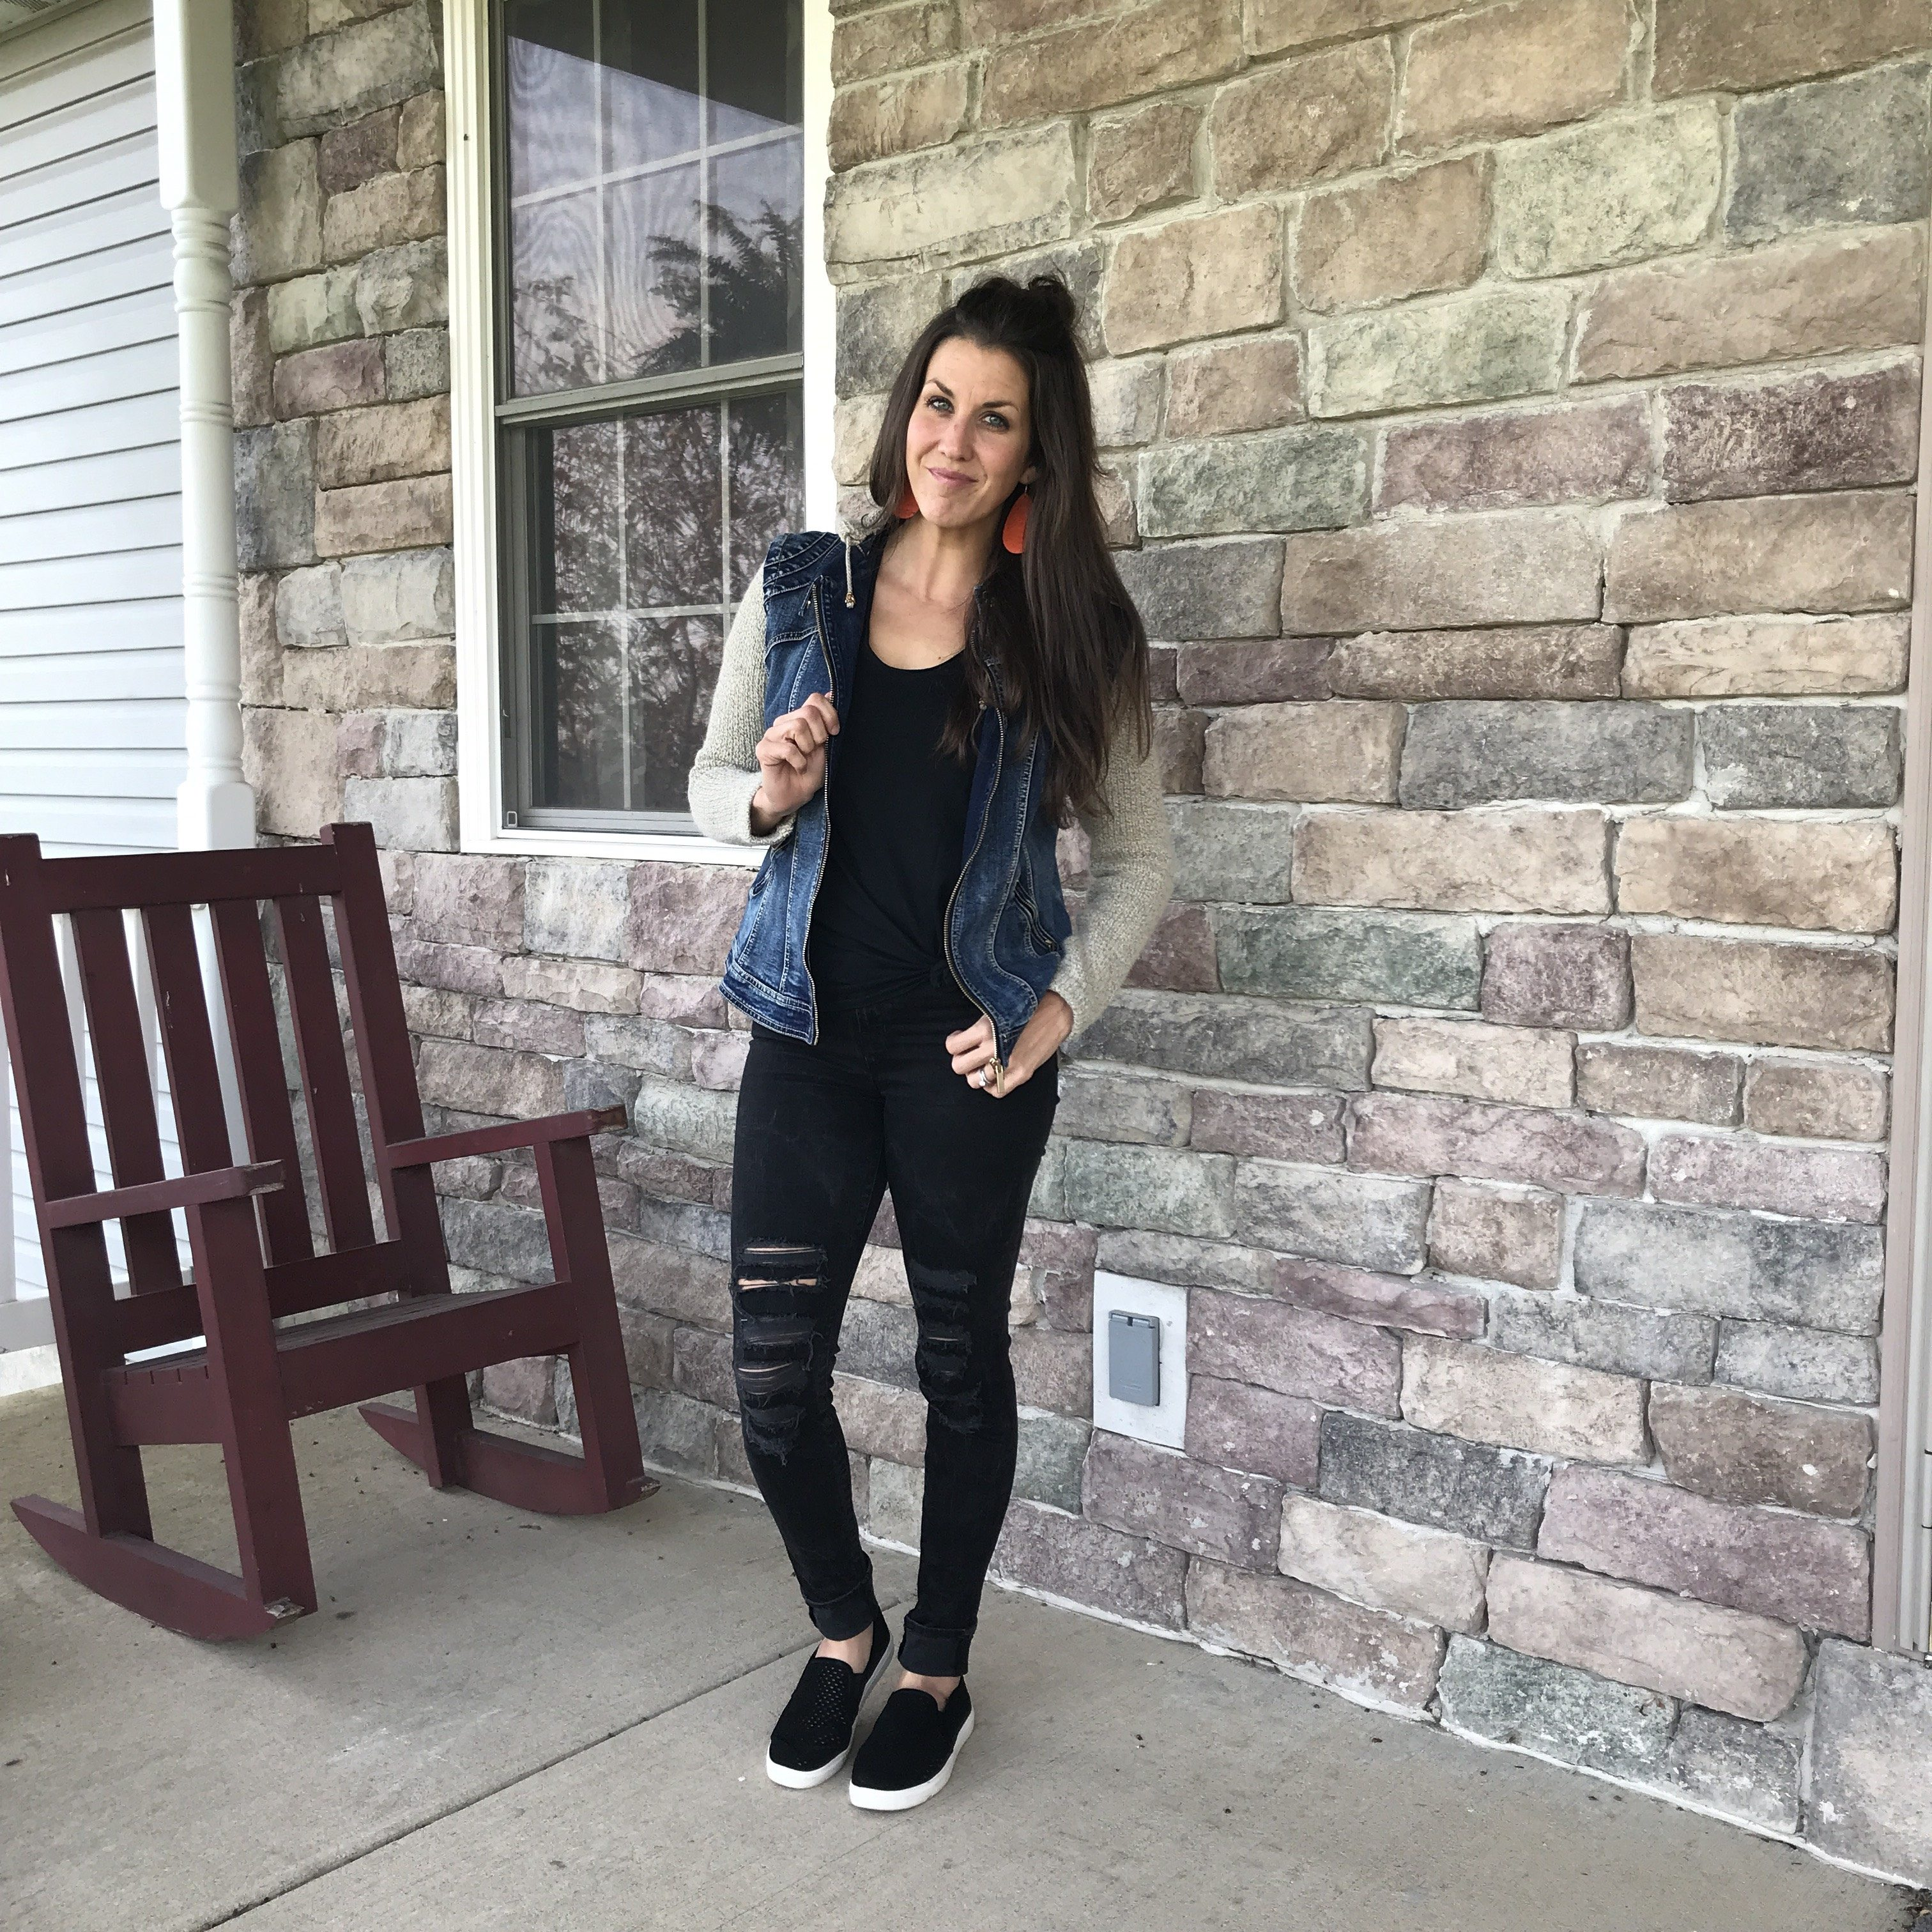 f1e58b25e0a9 Real Mom Style  Why I Love Ripped Jeans for Women - momma in flip flops